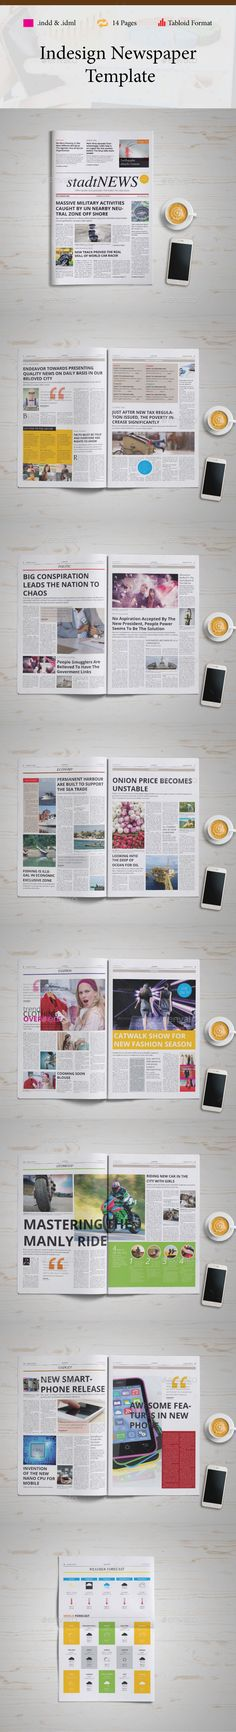 Old Style Newspaper Template | Newspaper and Newsletter templates